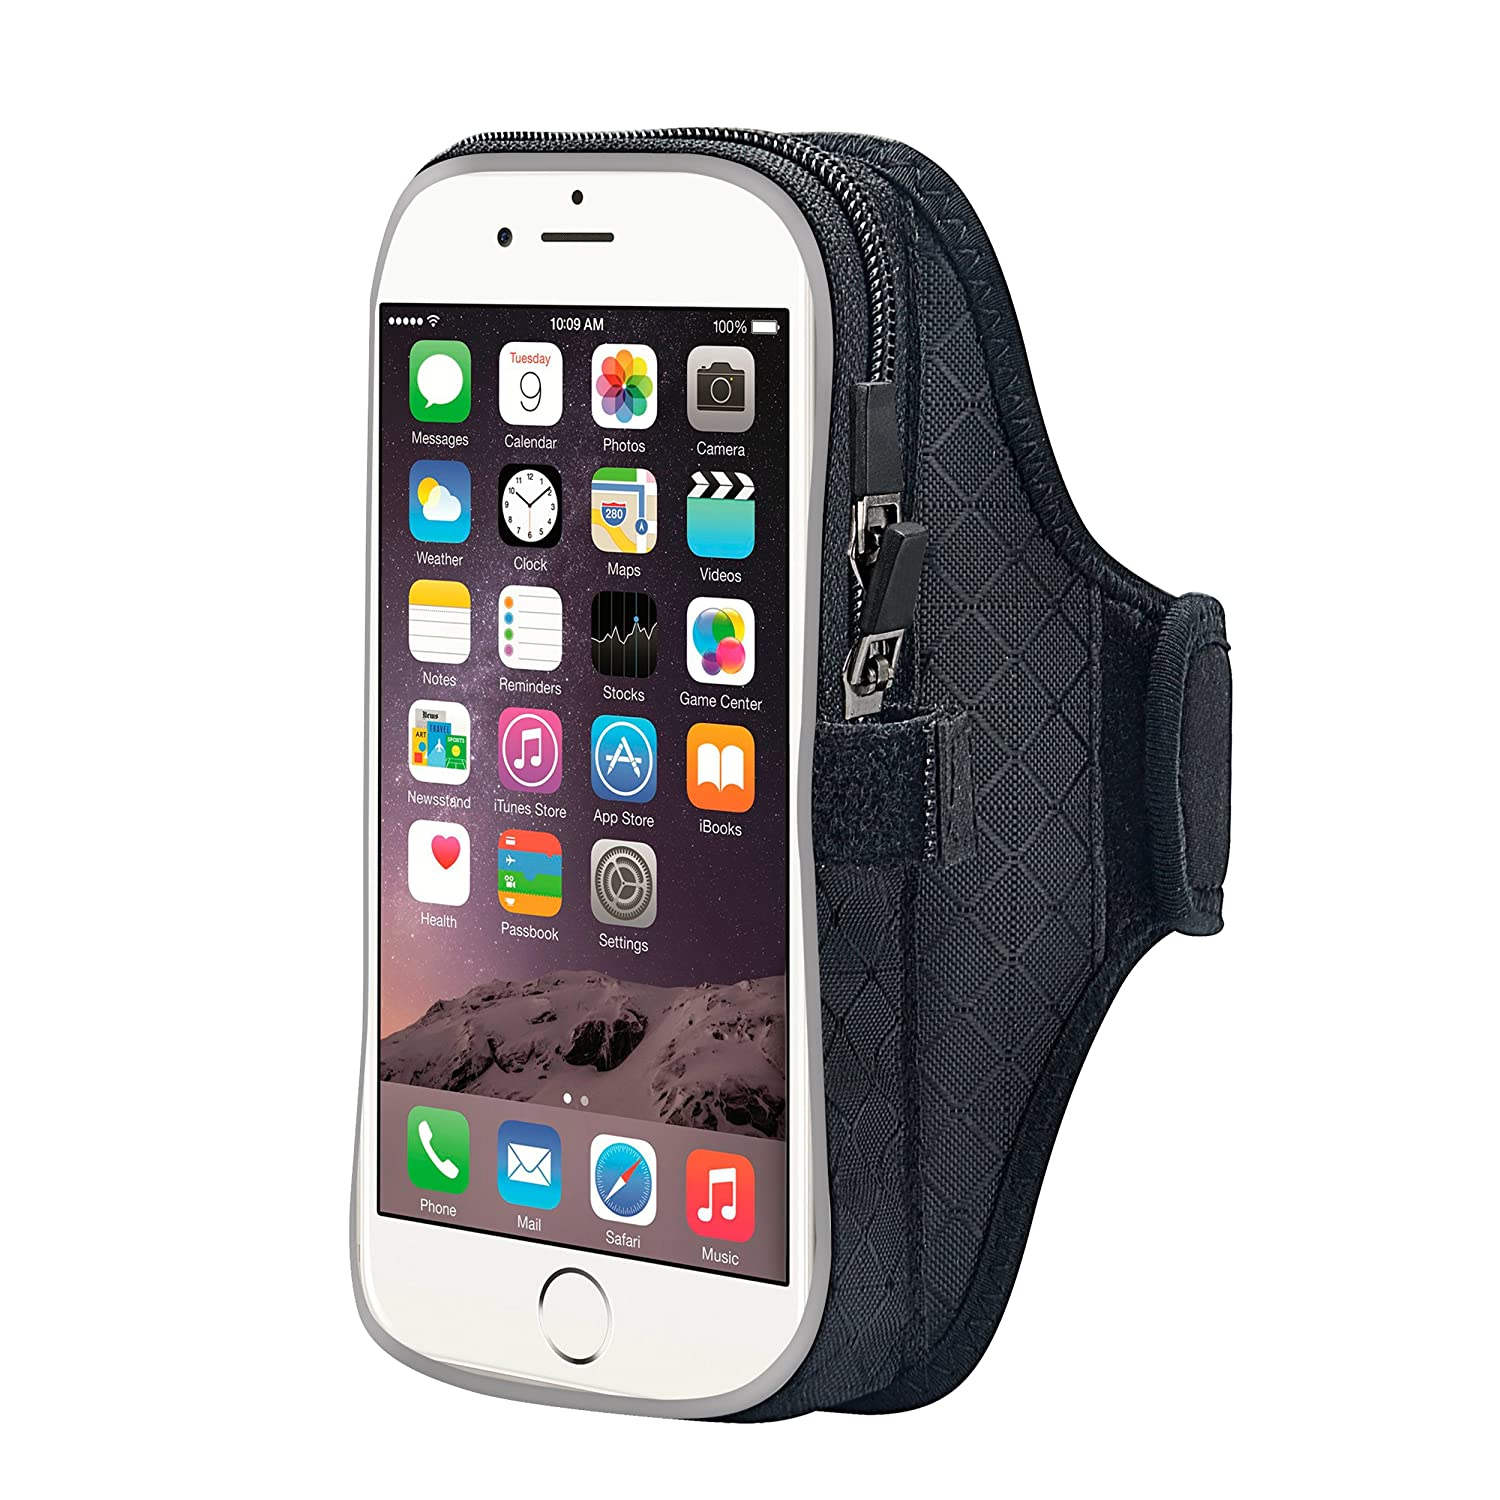 Amazon EOTW Sports Phone Armband Running Case Exercise Arm Band Cycling Fitness Arm Bag Gym Cell Phone Holder Pocket Pouch For iPhone 6 6S 5S 5 5C SE